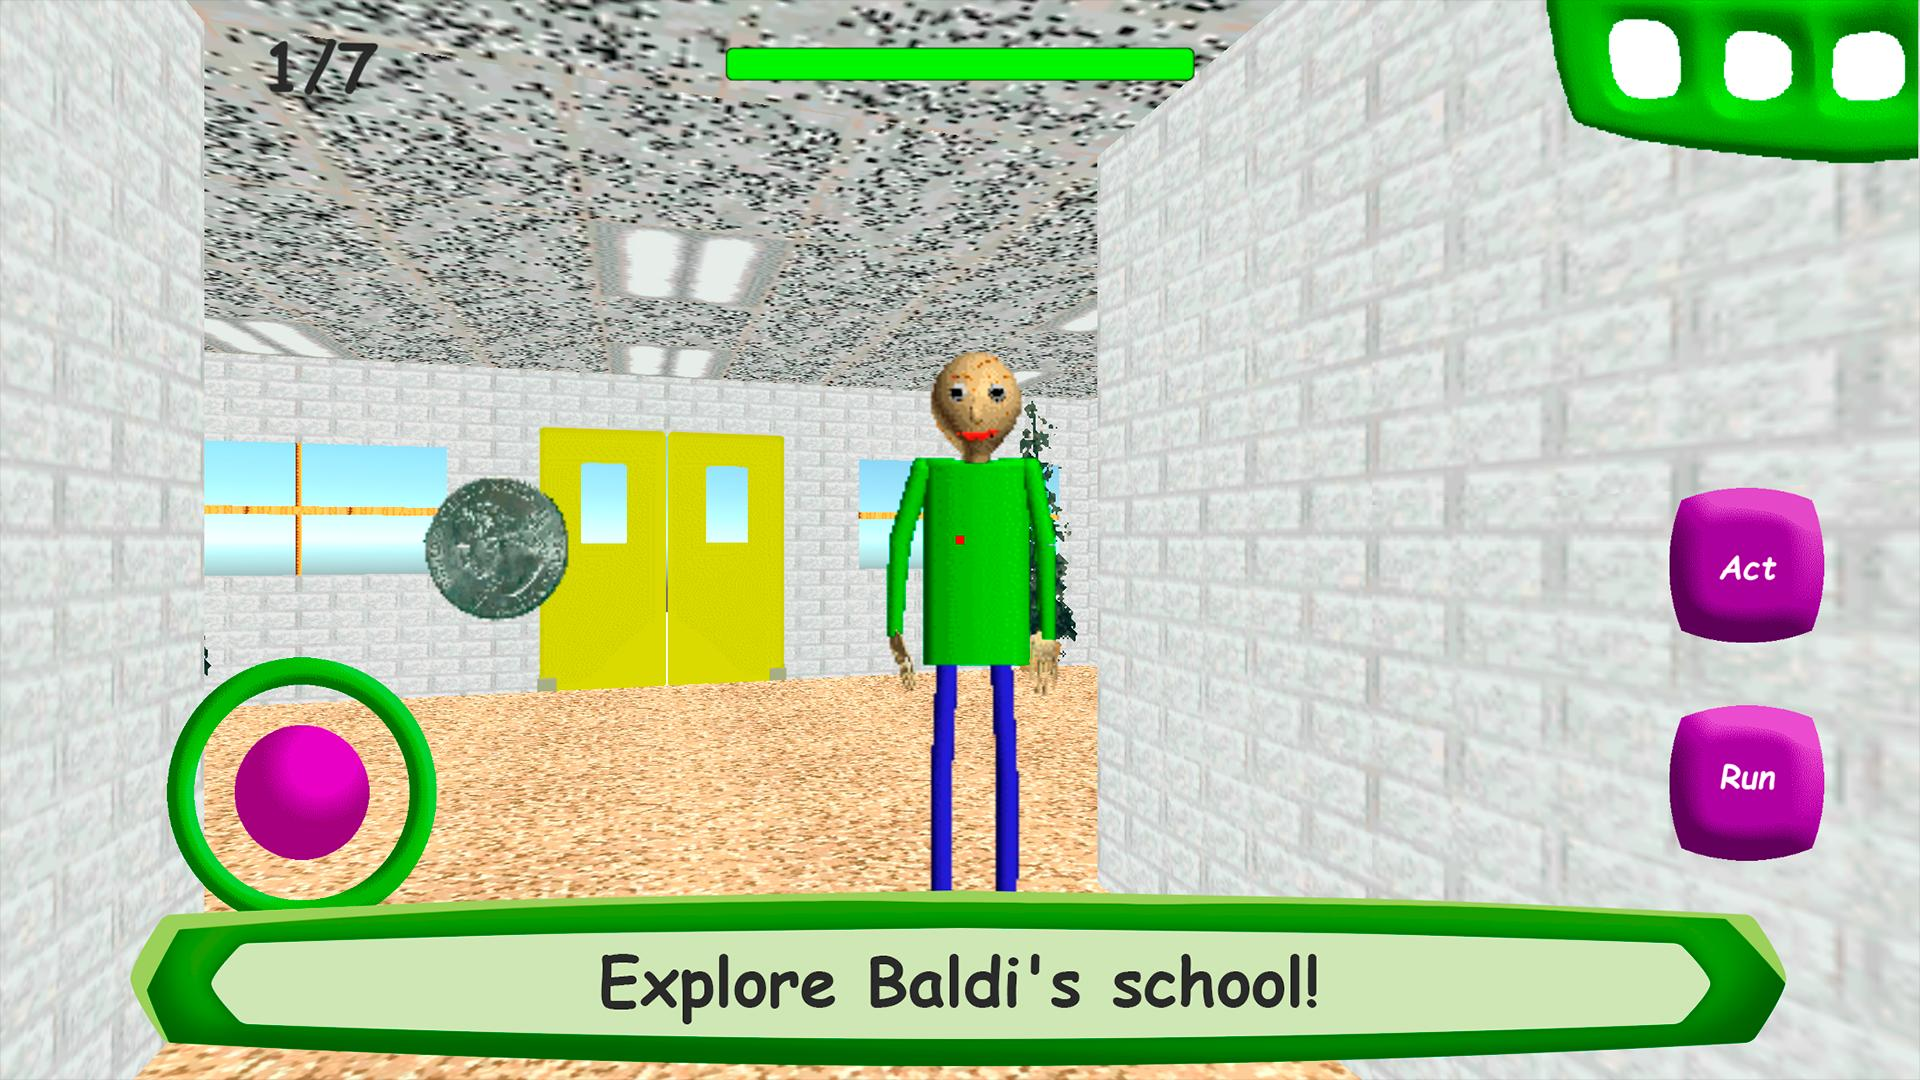 Baldi's Basics in Education for Android - APK Download